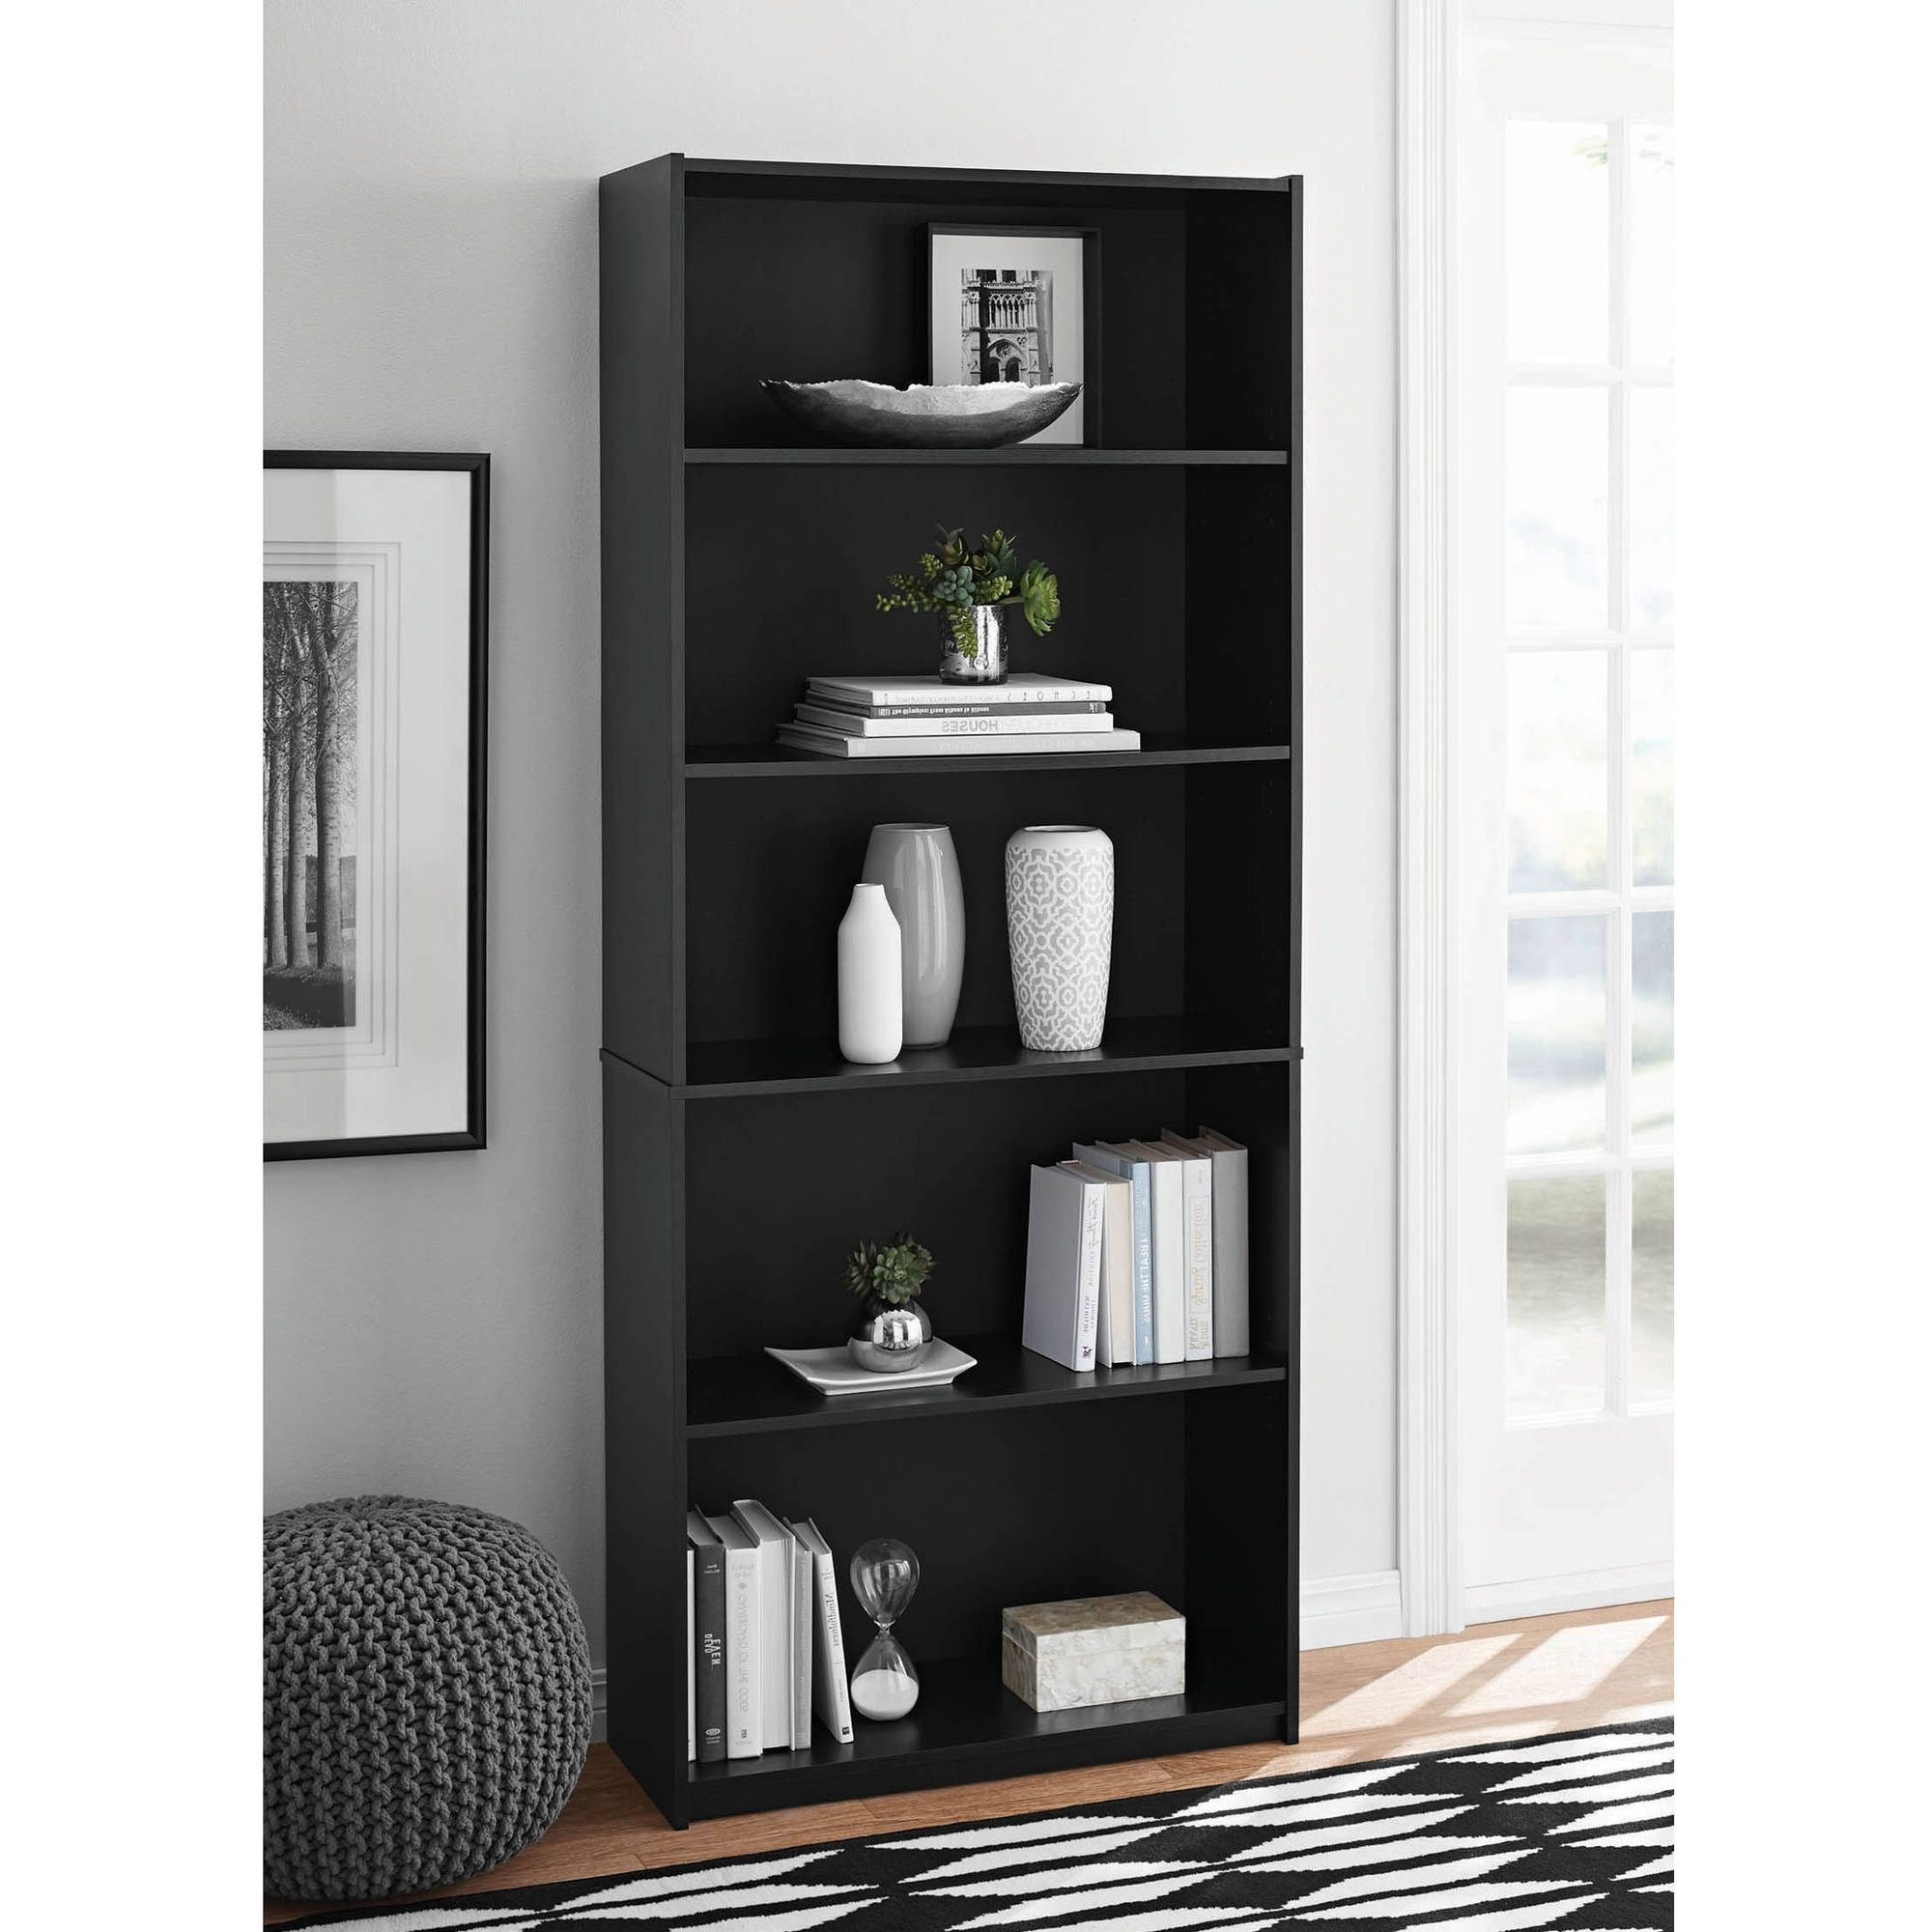 Mainstays 5 Shelf Bookcases With Regard To Well Known Mainstays 5 Shelf Standard Wood Bookcase – Walmart (View 4 of 15)